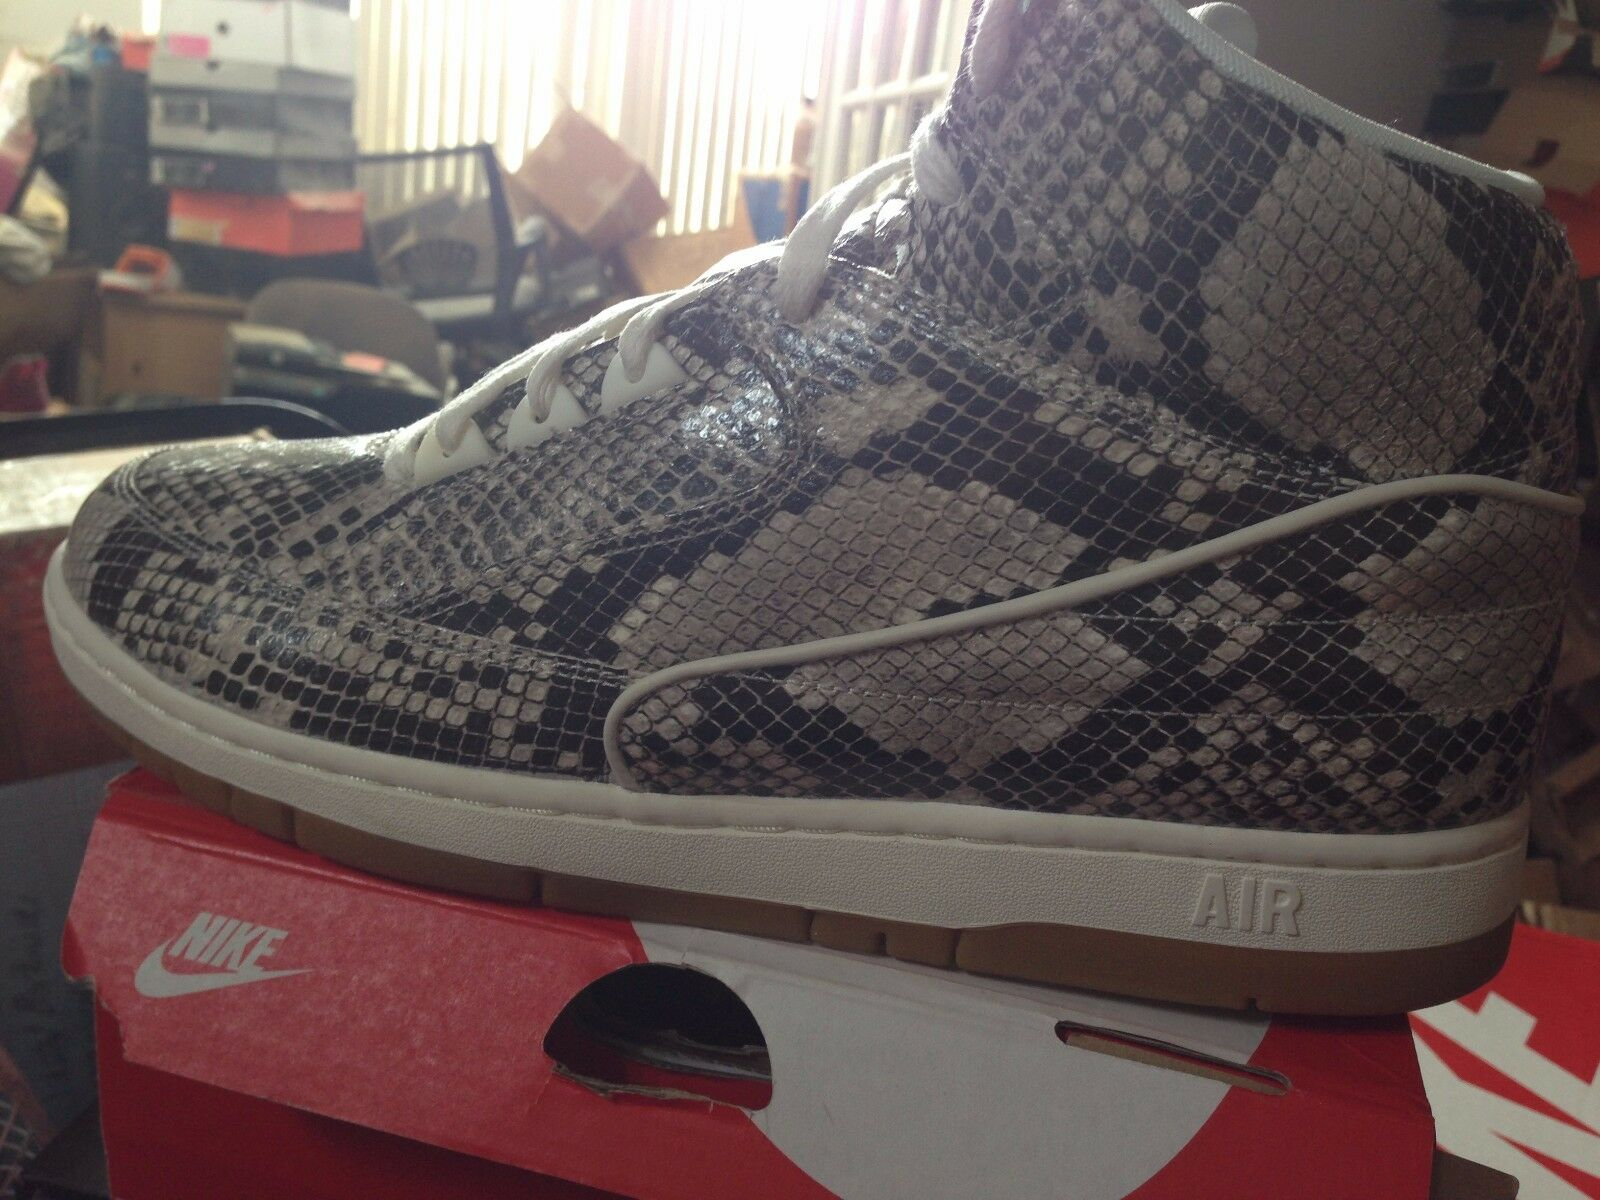 NIKE AIR PYTHON PRM BNIB BROWN SAIL GUM SIZE 11